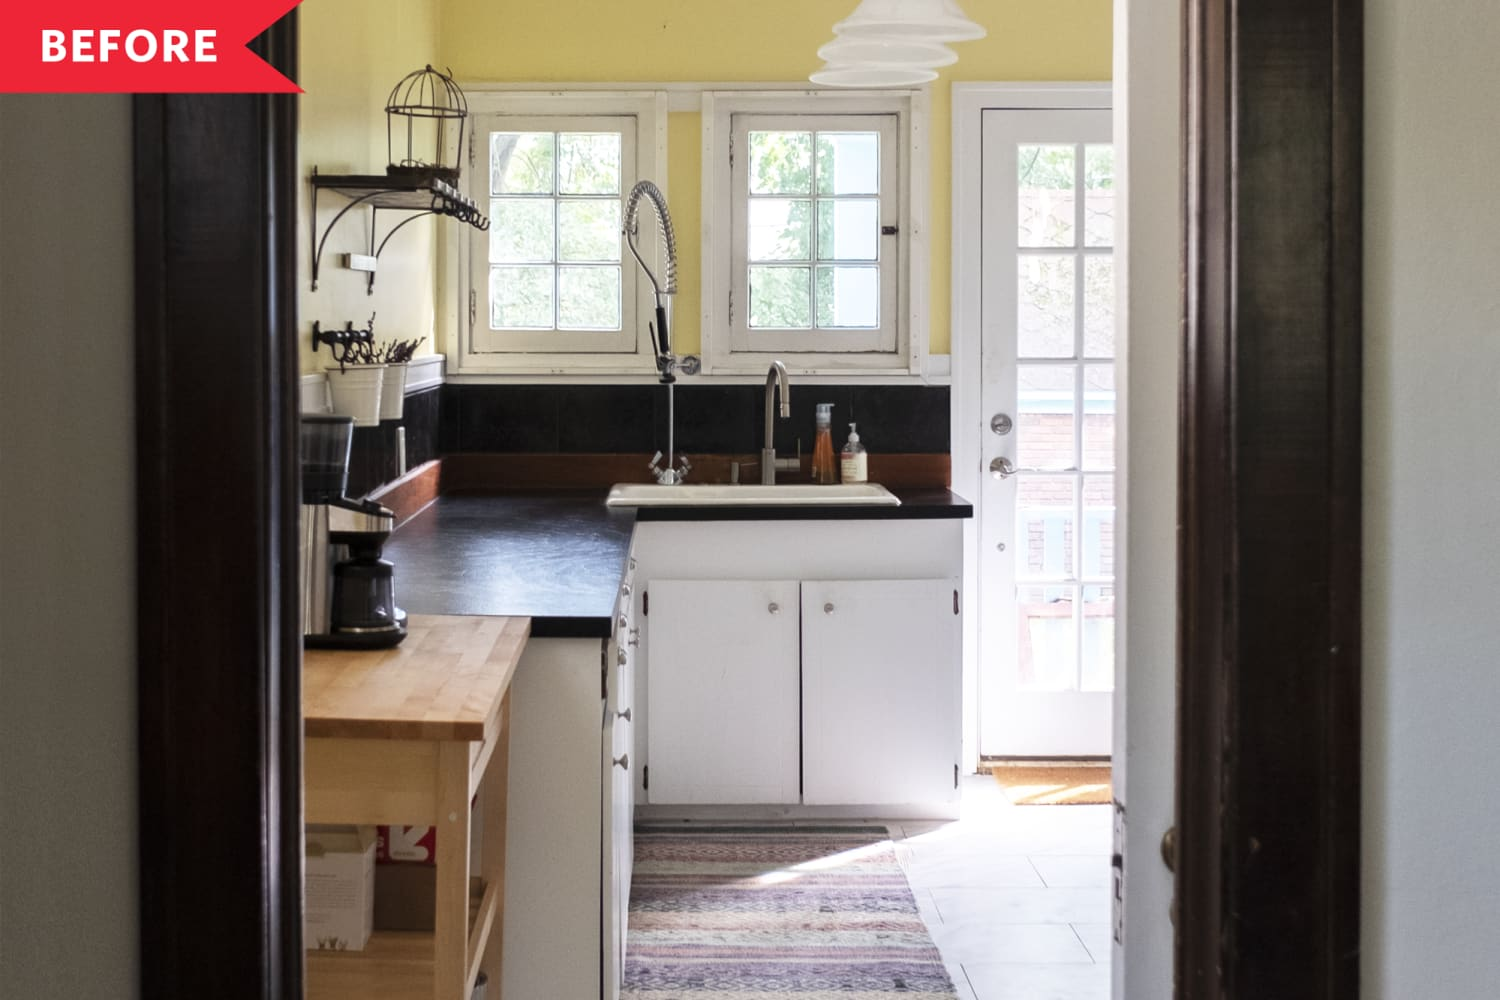 Before & After: This Dated Kitchen's Remodel Not Only Saves Its Vintage Charm, It Improves On It